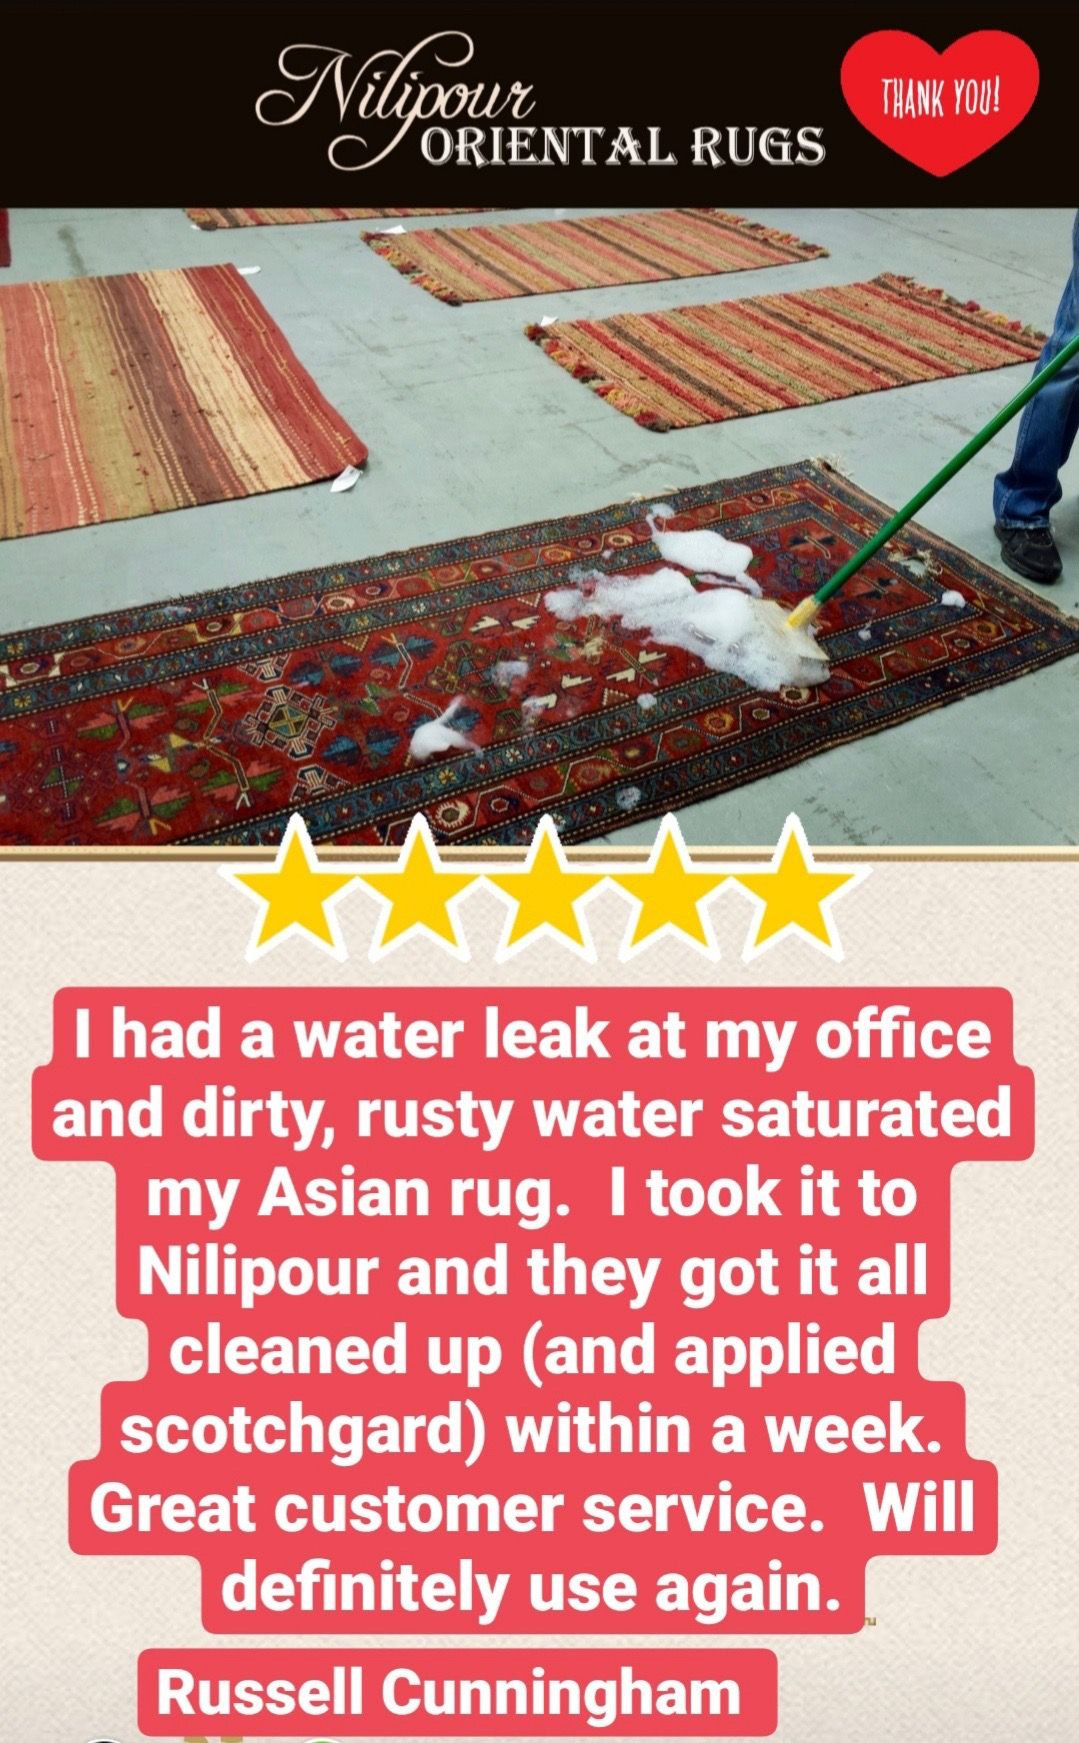 #ThankfulThursday for our very gracious customer for speaking blessings over our #familybusiness and our #rugcleaning services! Serving our community to the best of our ability is our mission and making our customers happy is our passion! If you need your rugs professionally cleaned and restored, let us help you as we did Mr. Cunningham! #NilipourOrientalRugs #since1972 #rugcleaners #arearugcleaning #orientalrugcleaning #rugrestoration #arearugrestoration #orientalrugrestoration